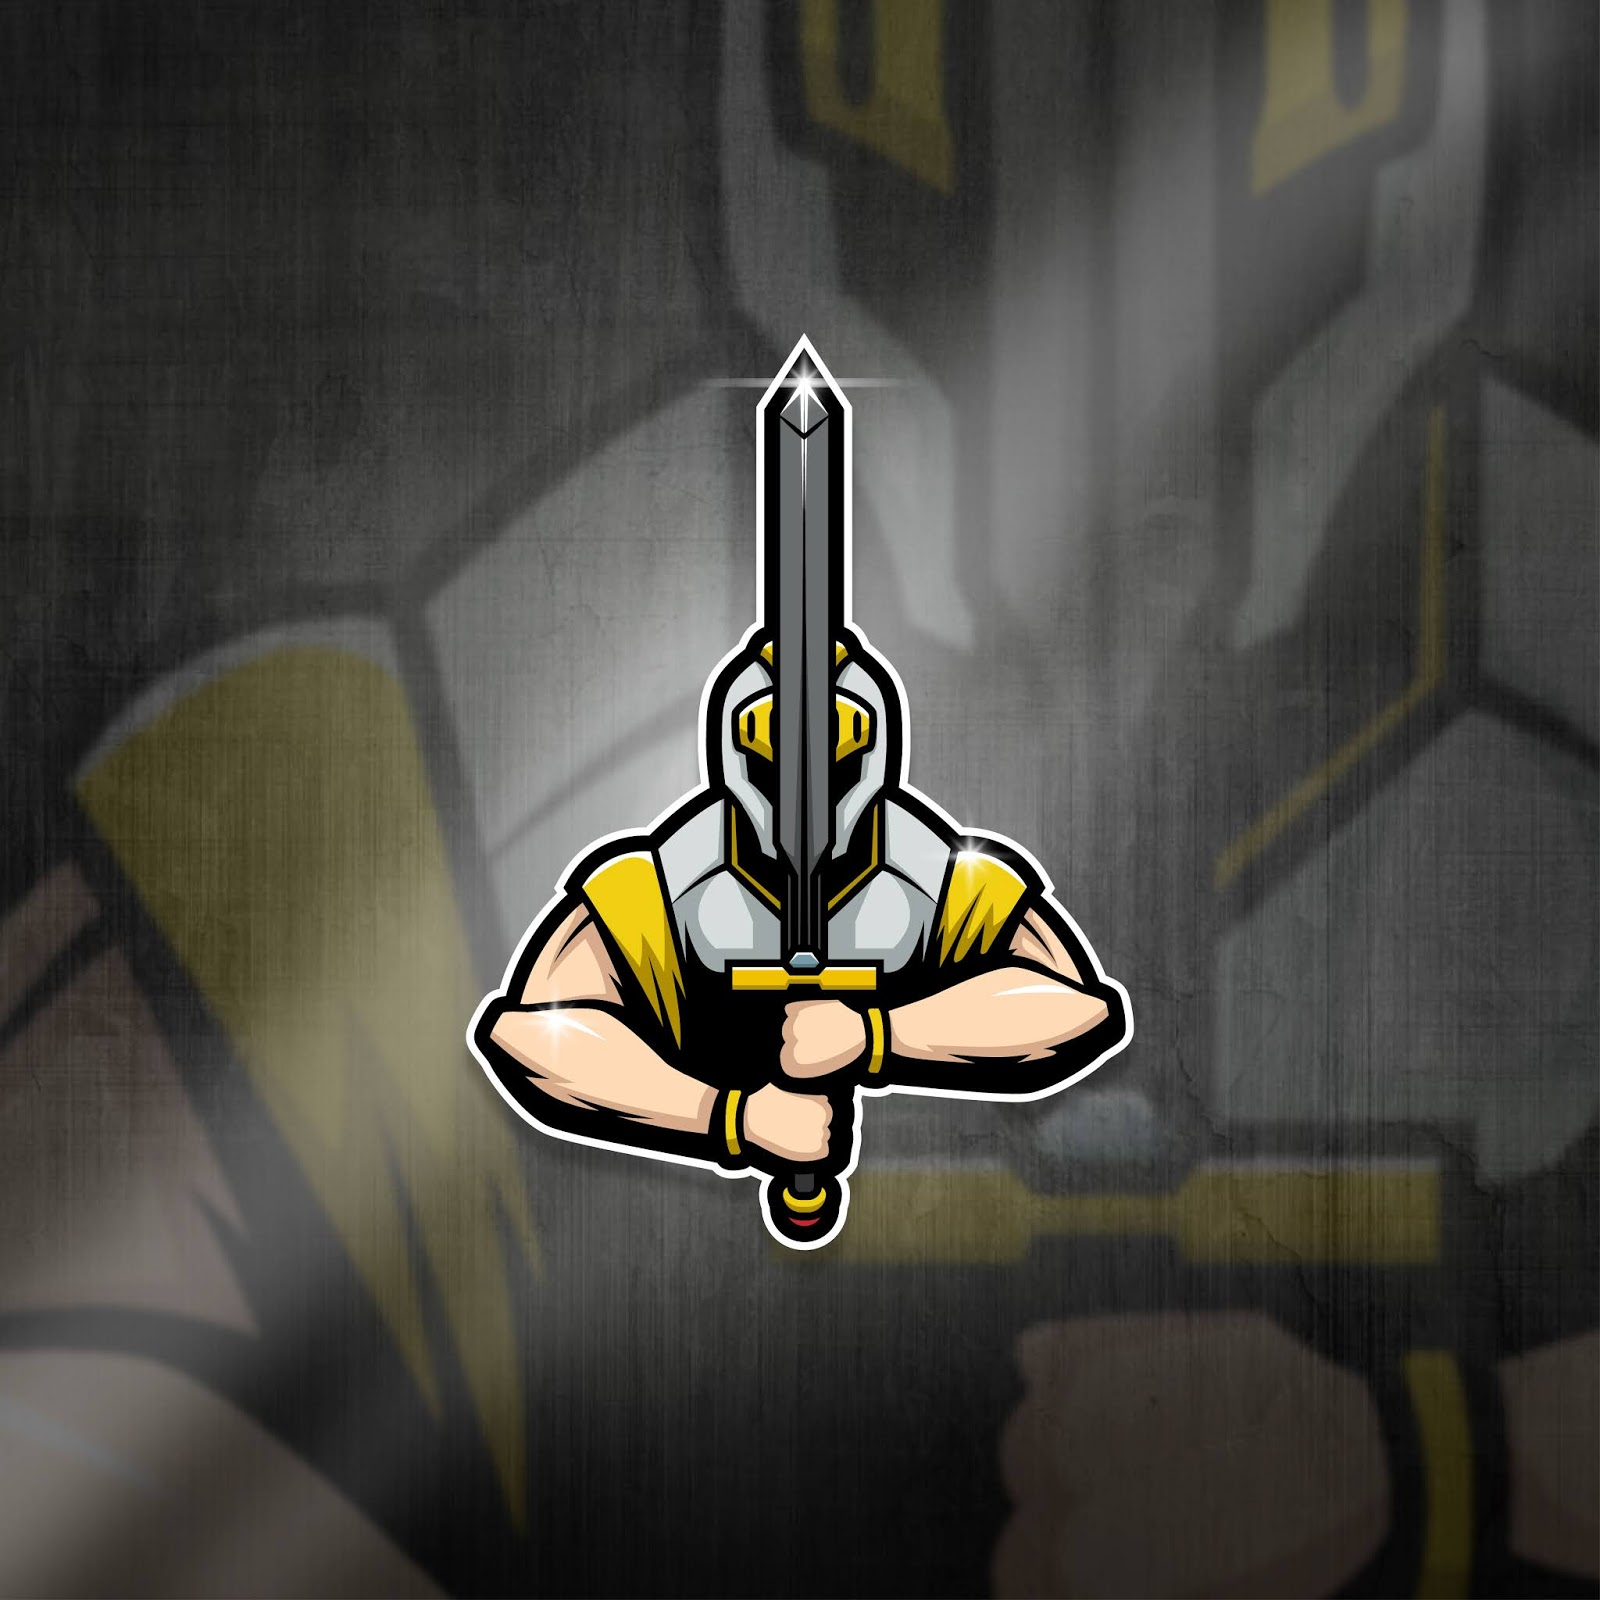 Esports Mascot Logo Team Knight Squad Free Download Vector CDR, AI, EPS and PNG Formats